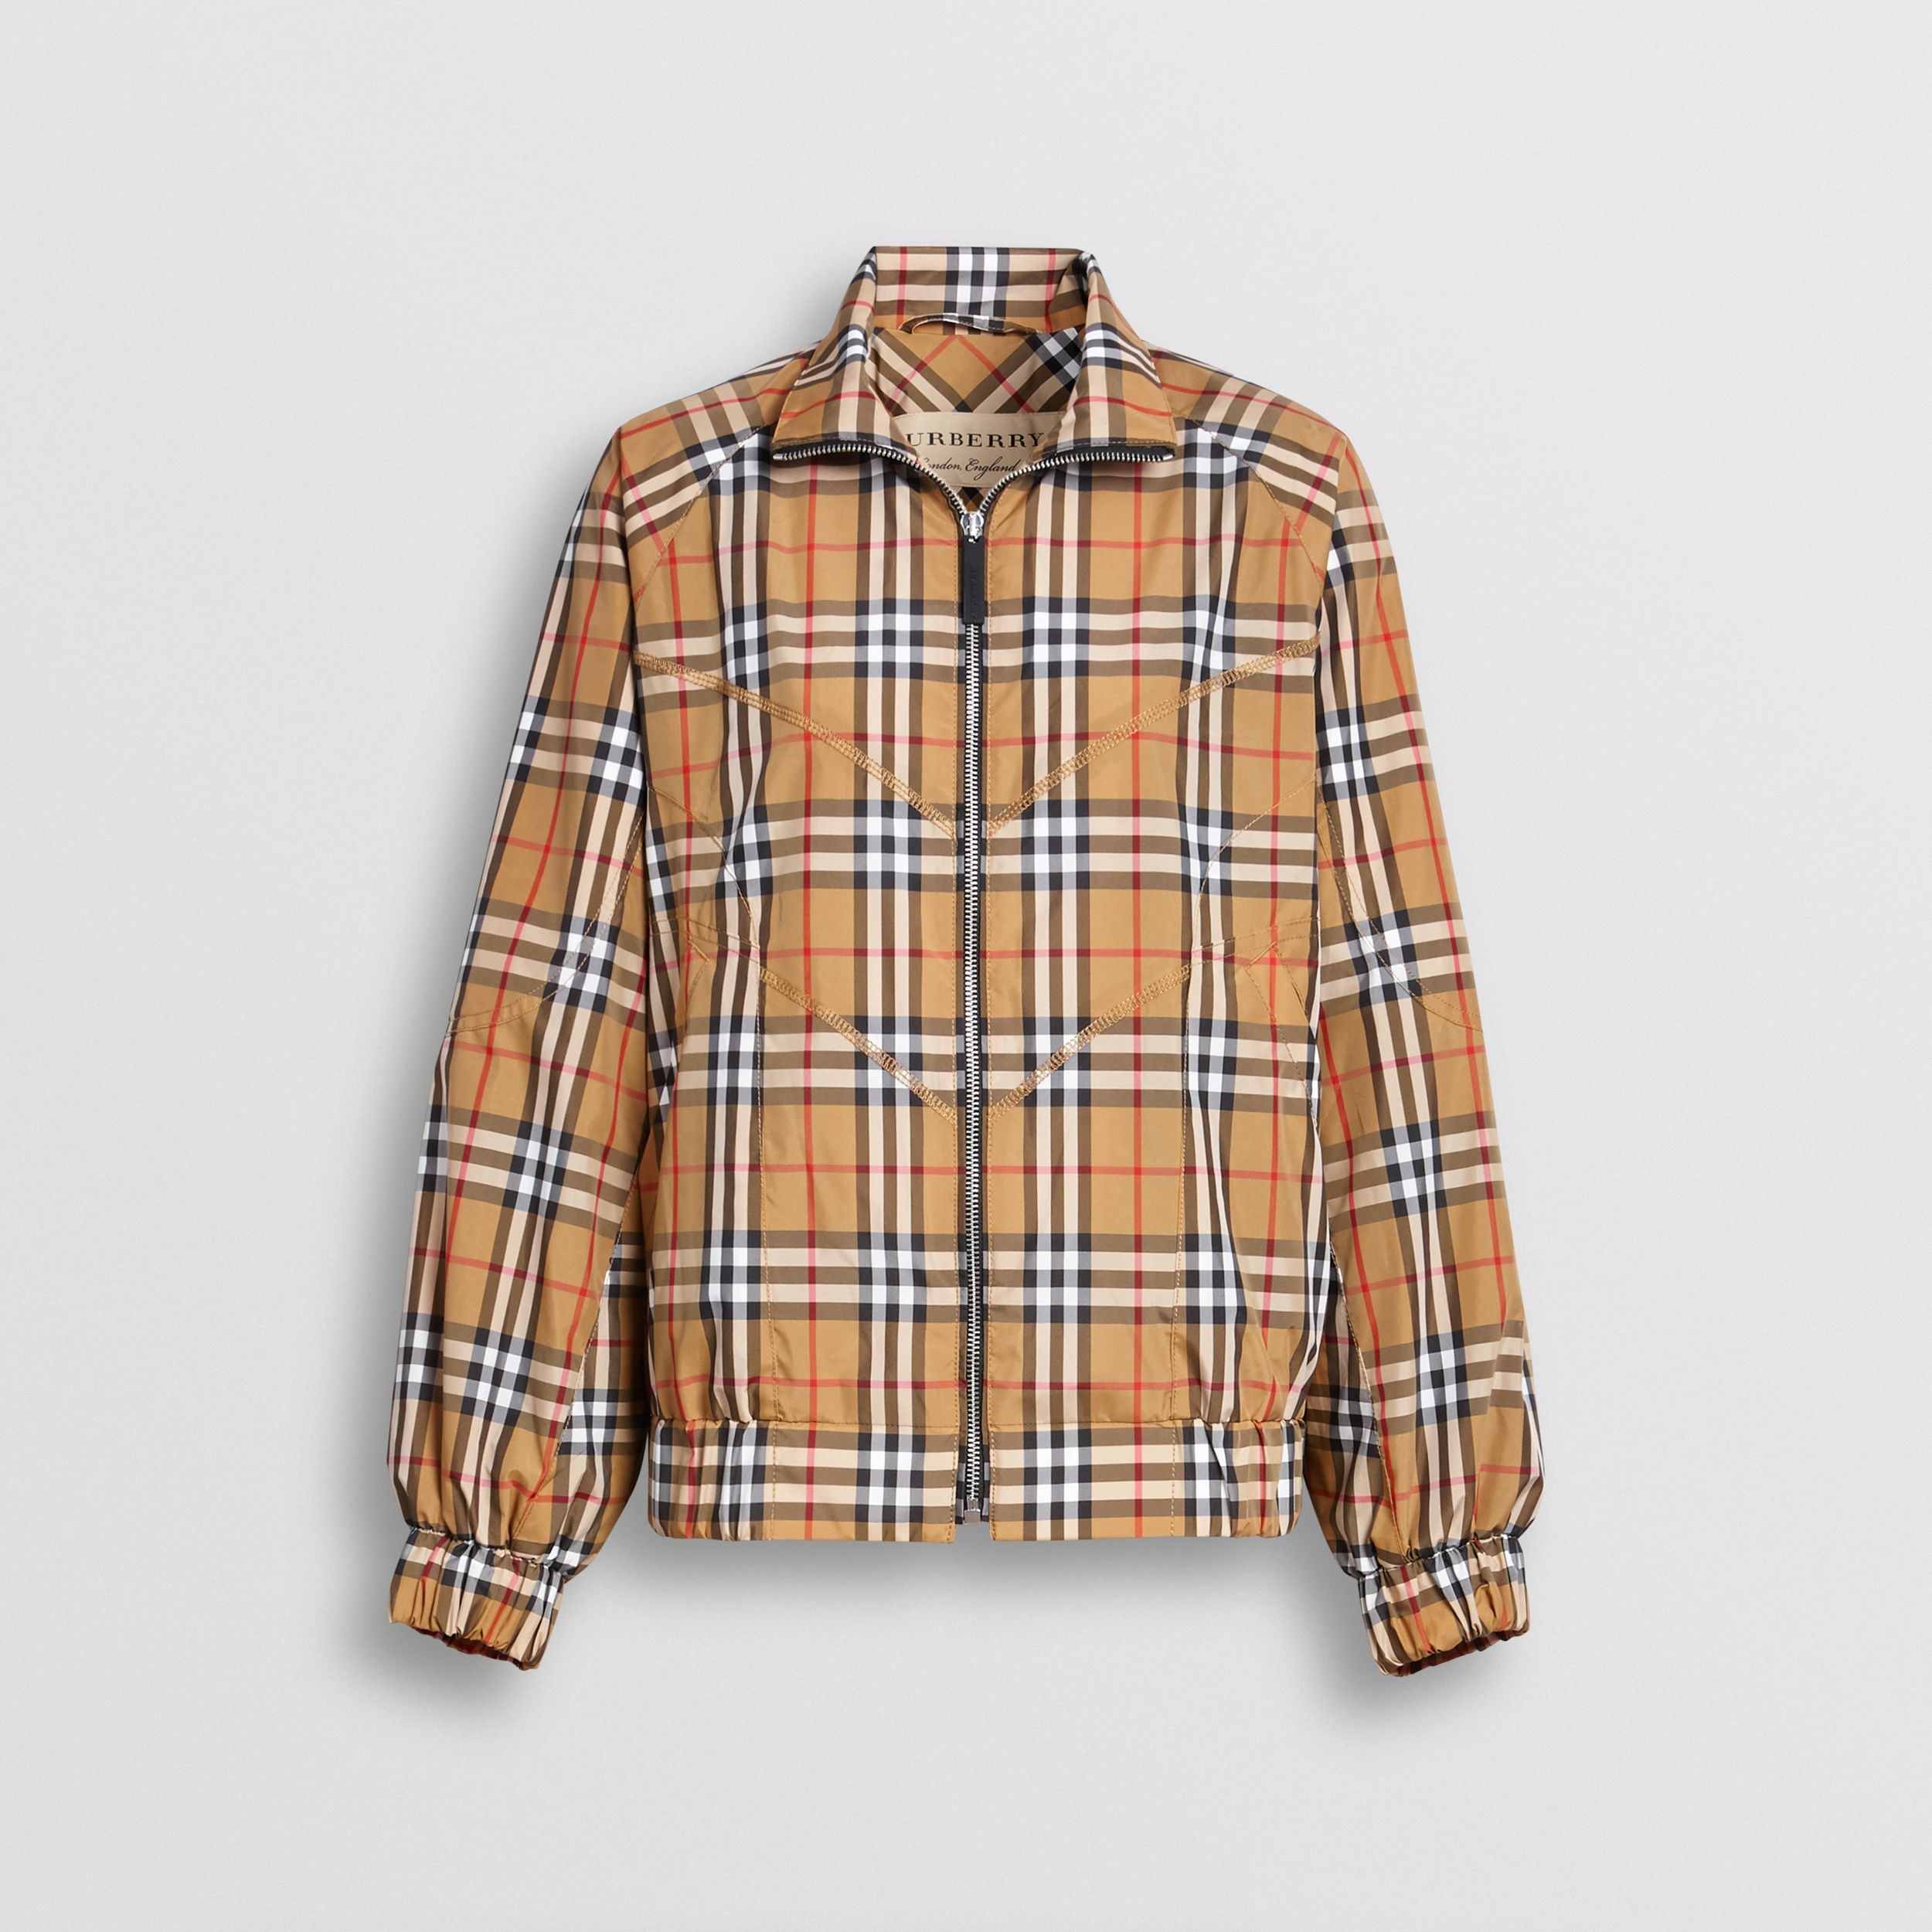 Topstitch Detail Vintage Check Harrington Jacket in Antique Yellow - Women | Burberry - 1